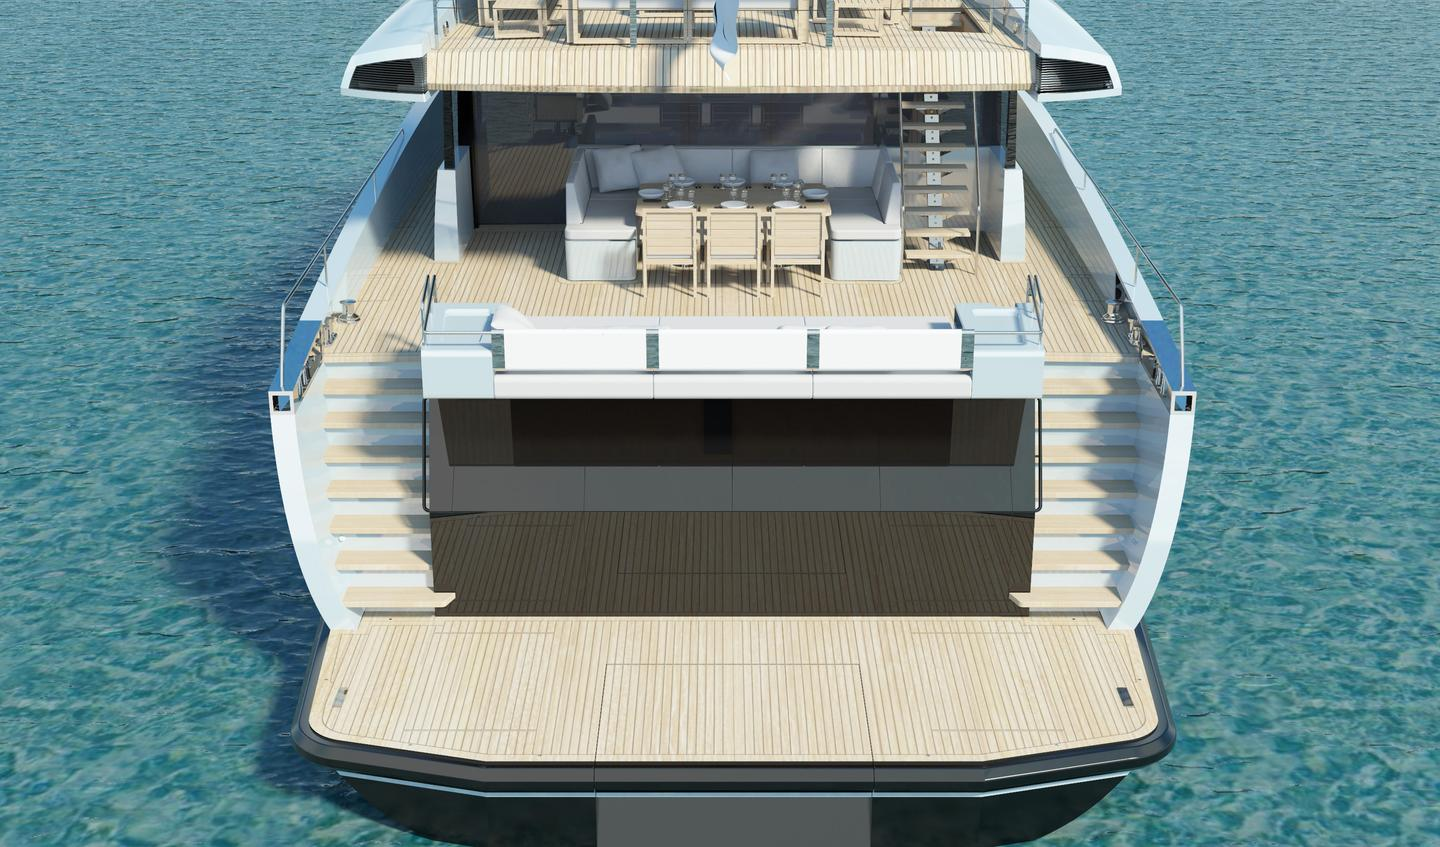 The Wally ACE displacement yacht - rear